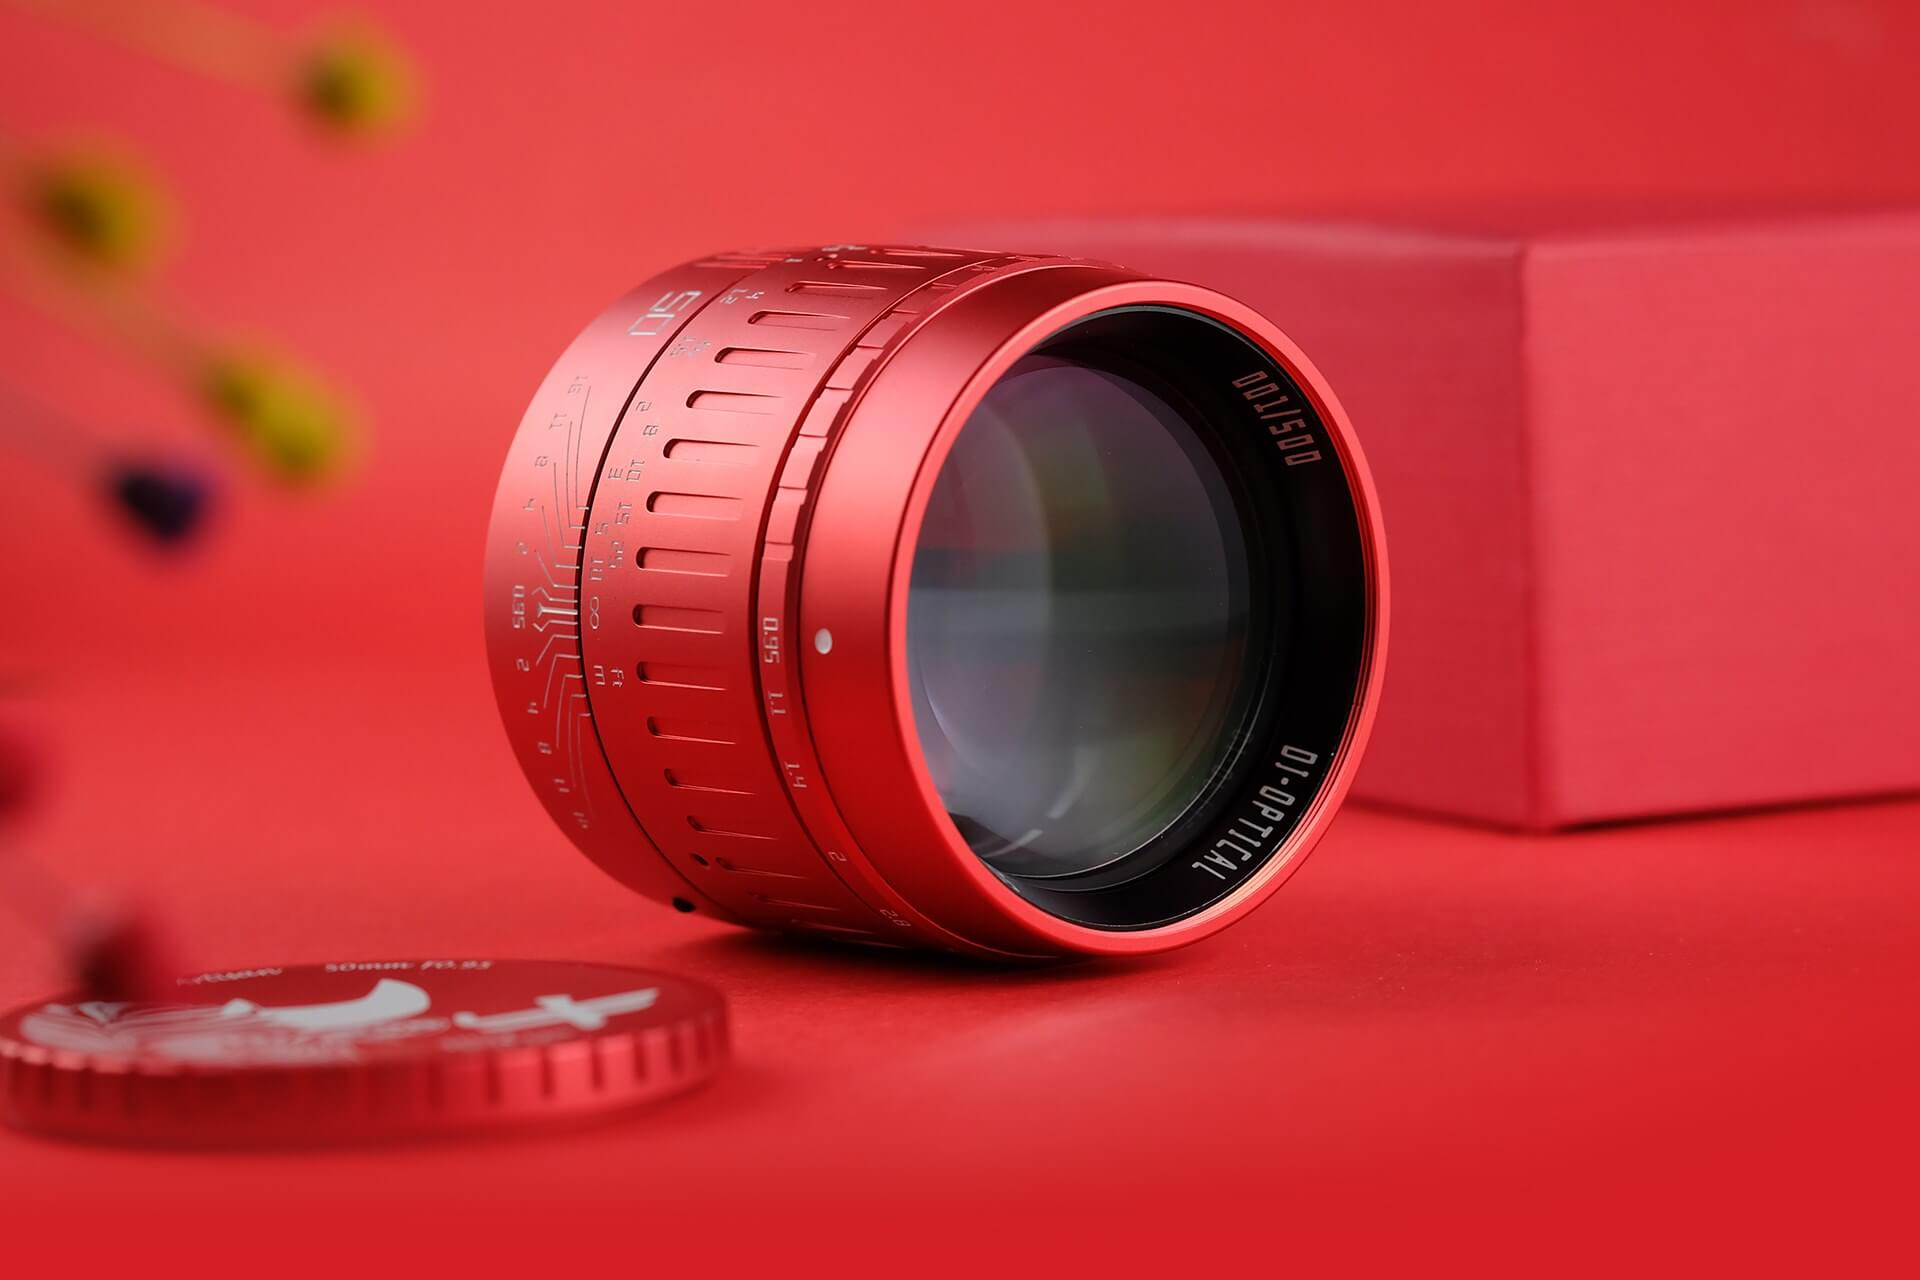 TTartisan 50mm f/0.95 Red Limited Edition